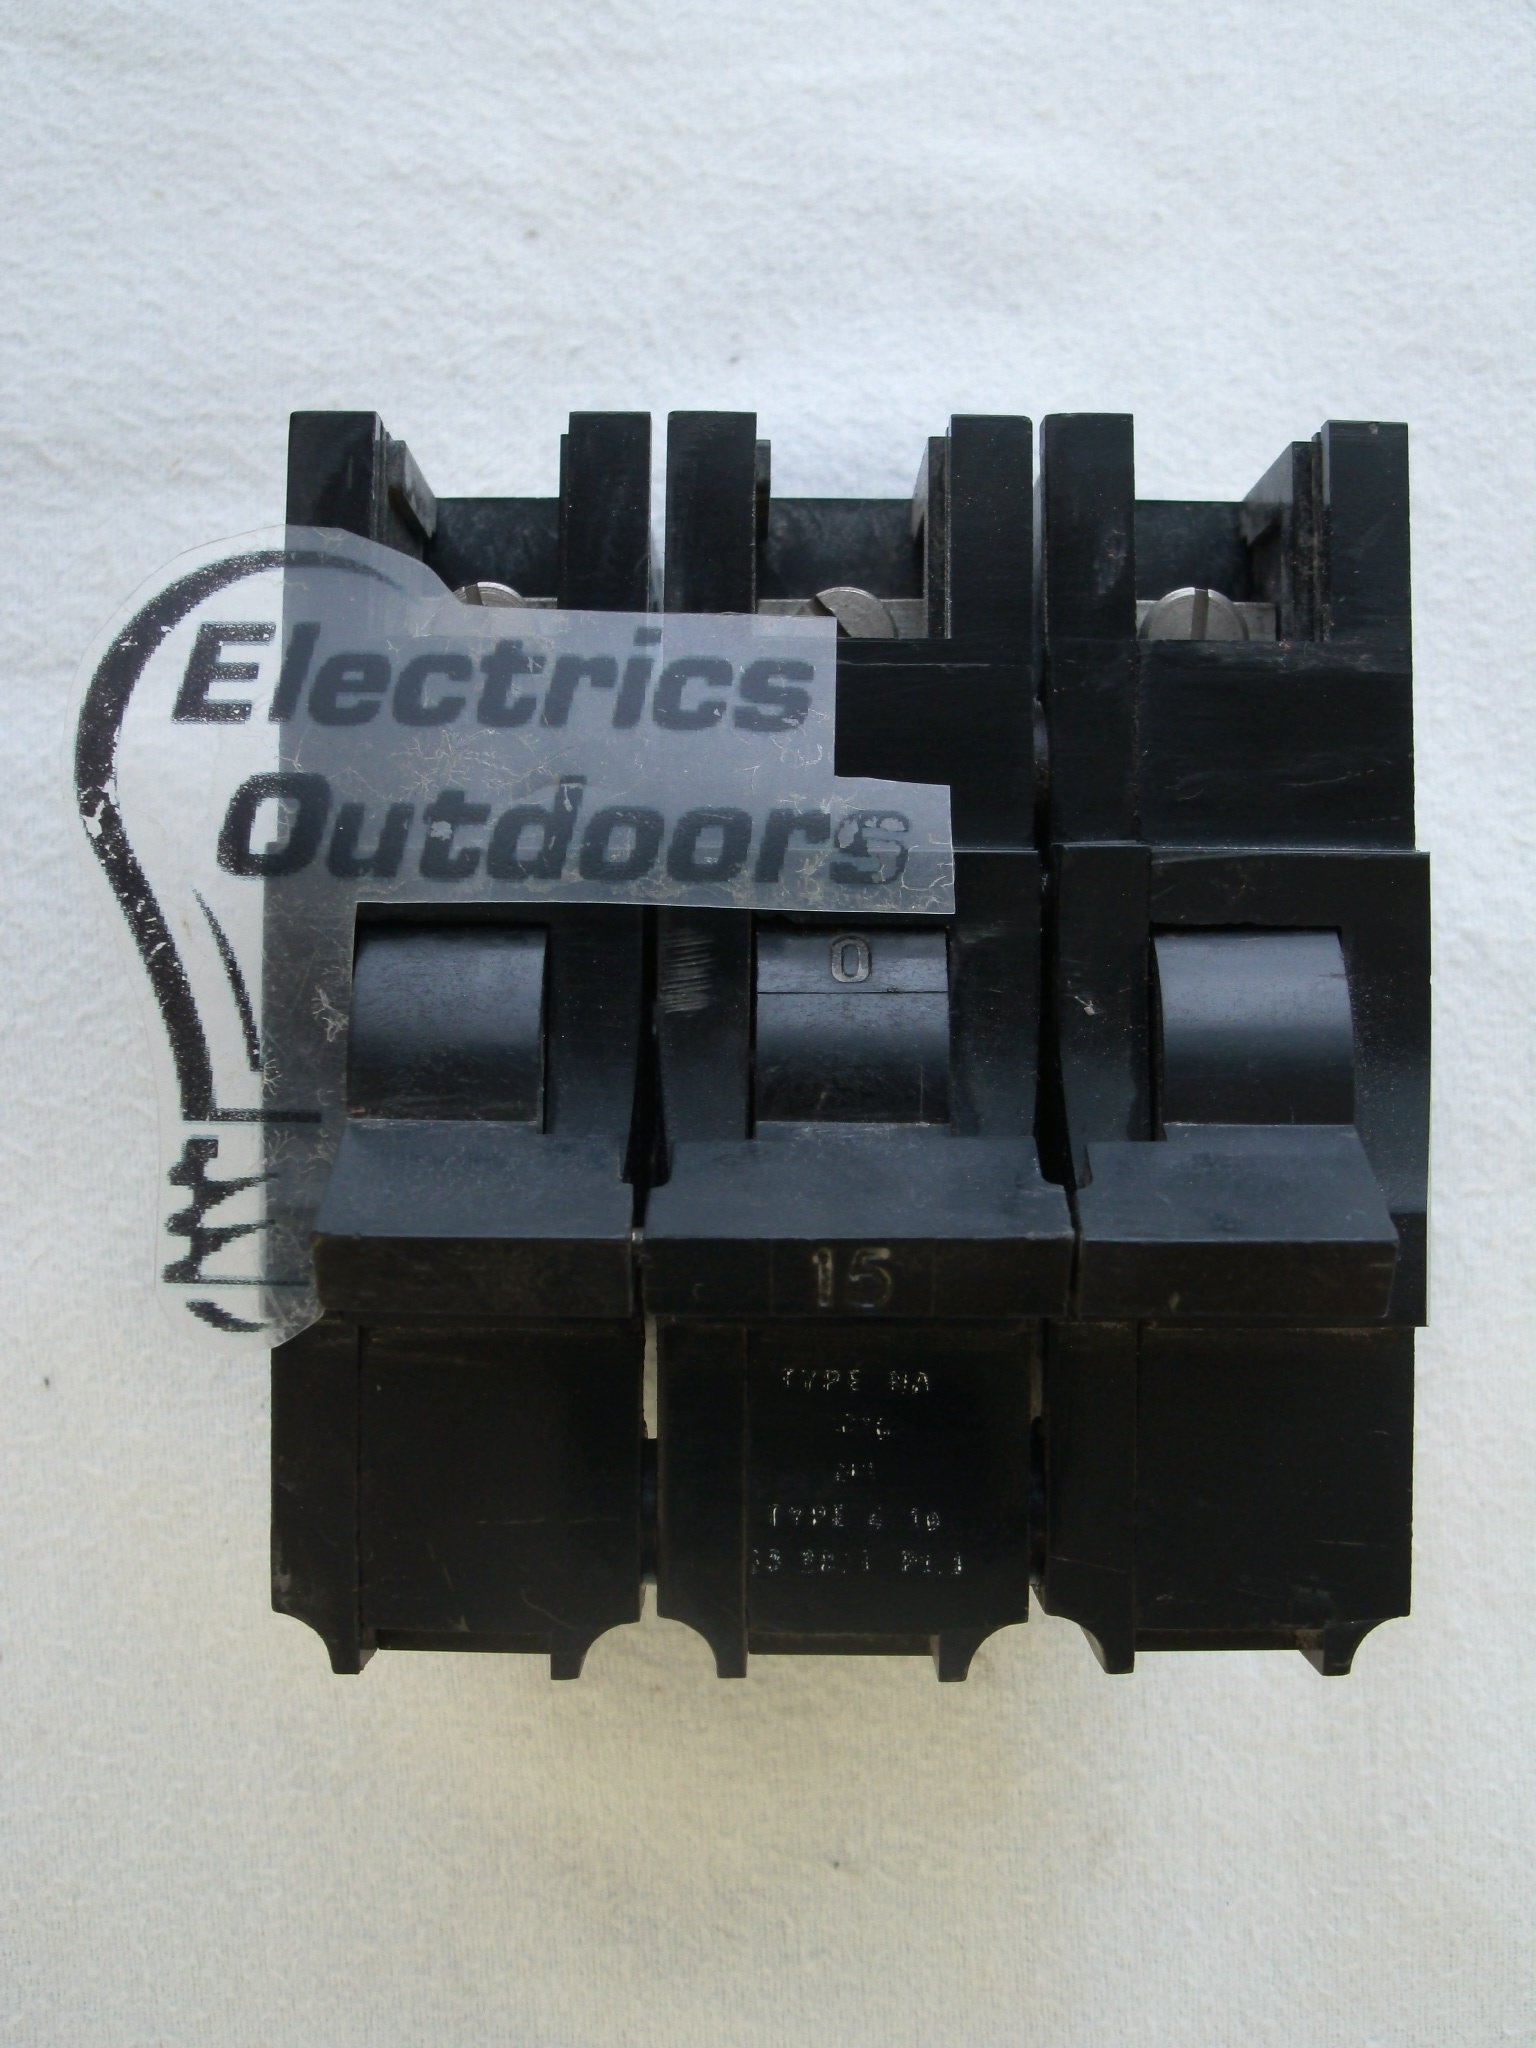 FEDERAL ELECTRIC 15 AMP TYPE 4 M5 TRIPLE POLE MCB CIRCUIT BREAKER STABLOK NA